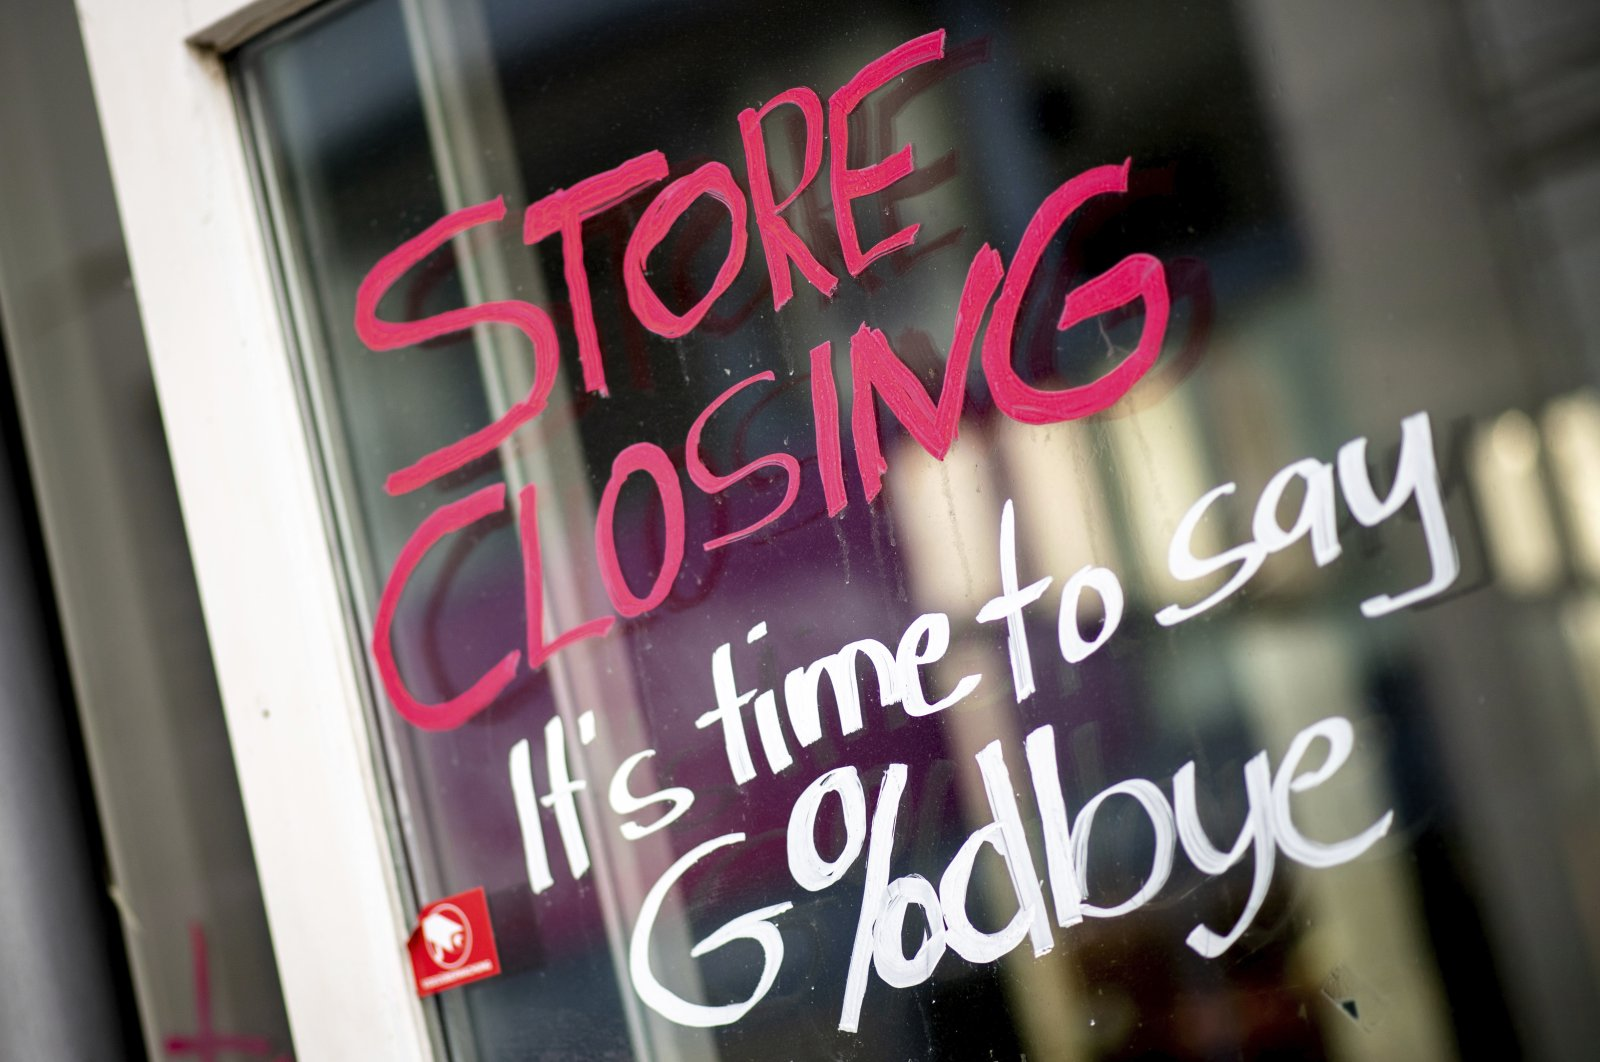 """The words """"Store Closing"""" and the addition """"It's time to say Goodbye"""" with a percent sign are written on the window of a closed store in the city center in Oldenburg, Germany, April 1, 2021. (AP Photo)"""